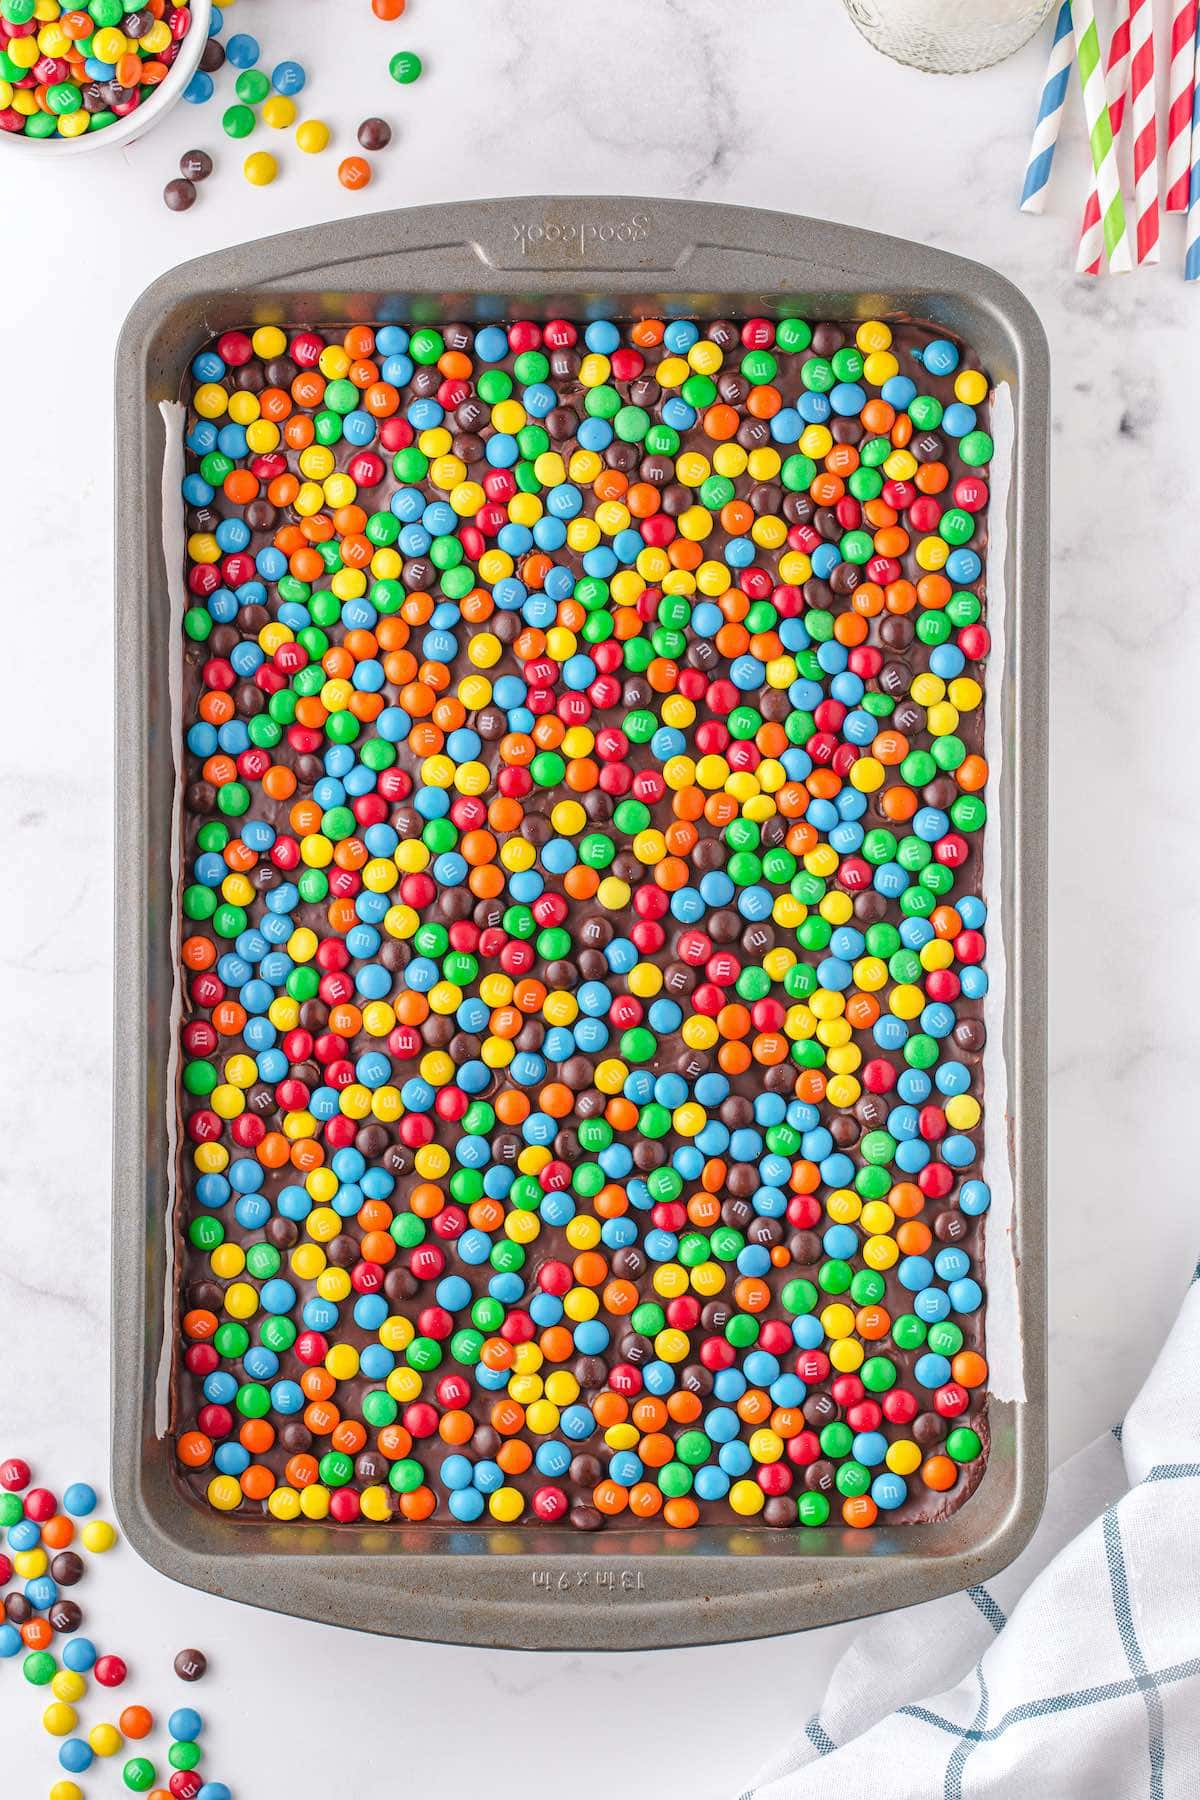 spread M&M's on the top